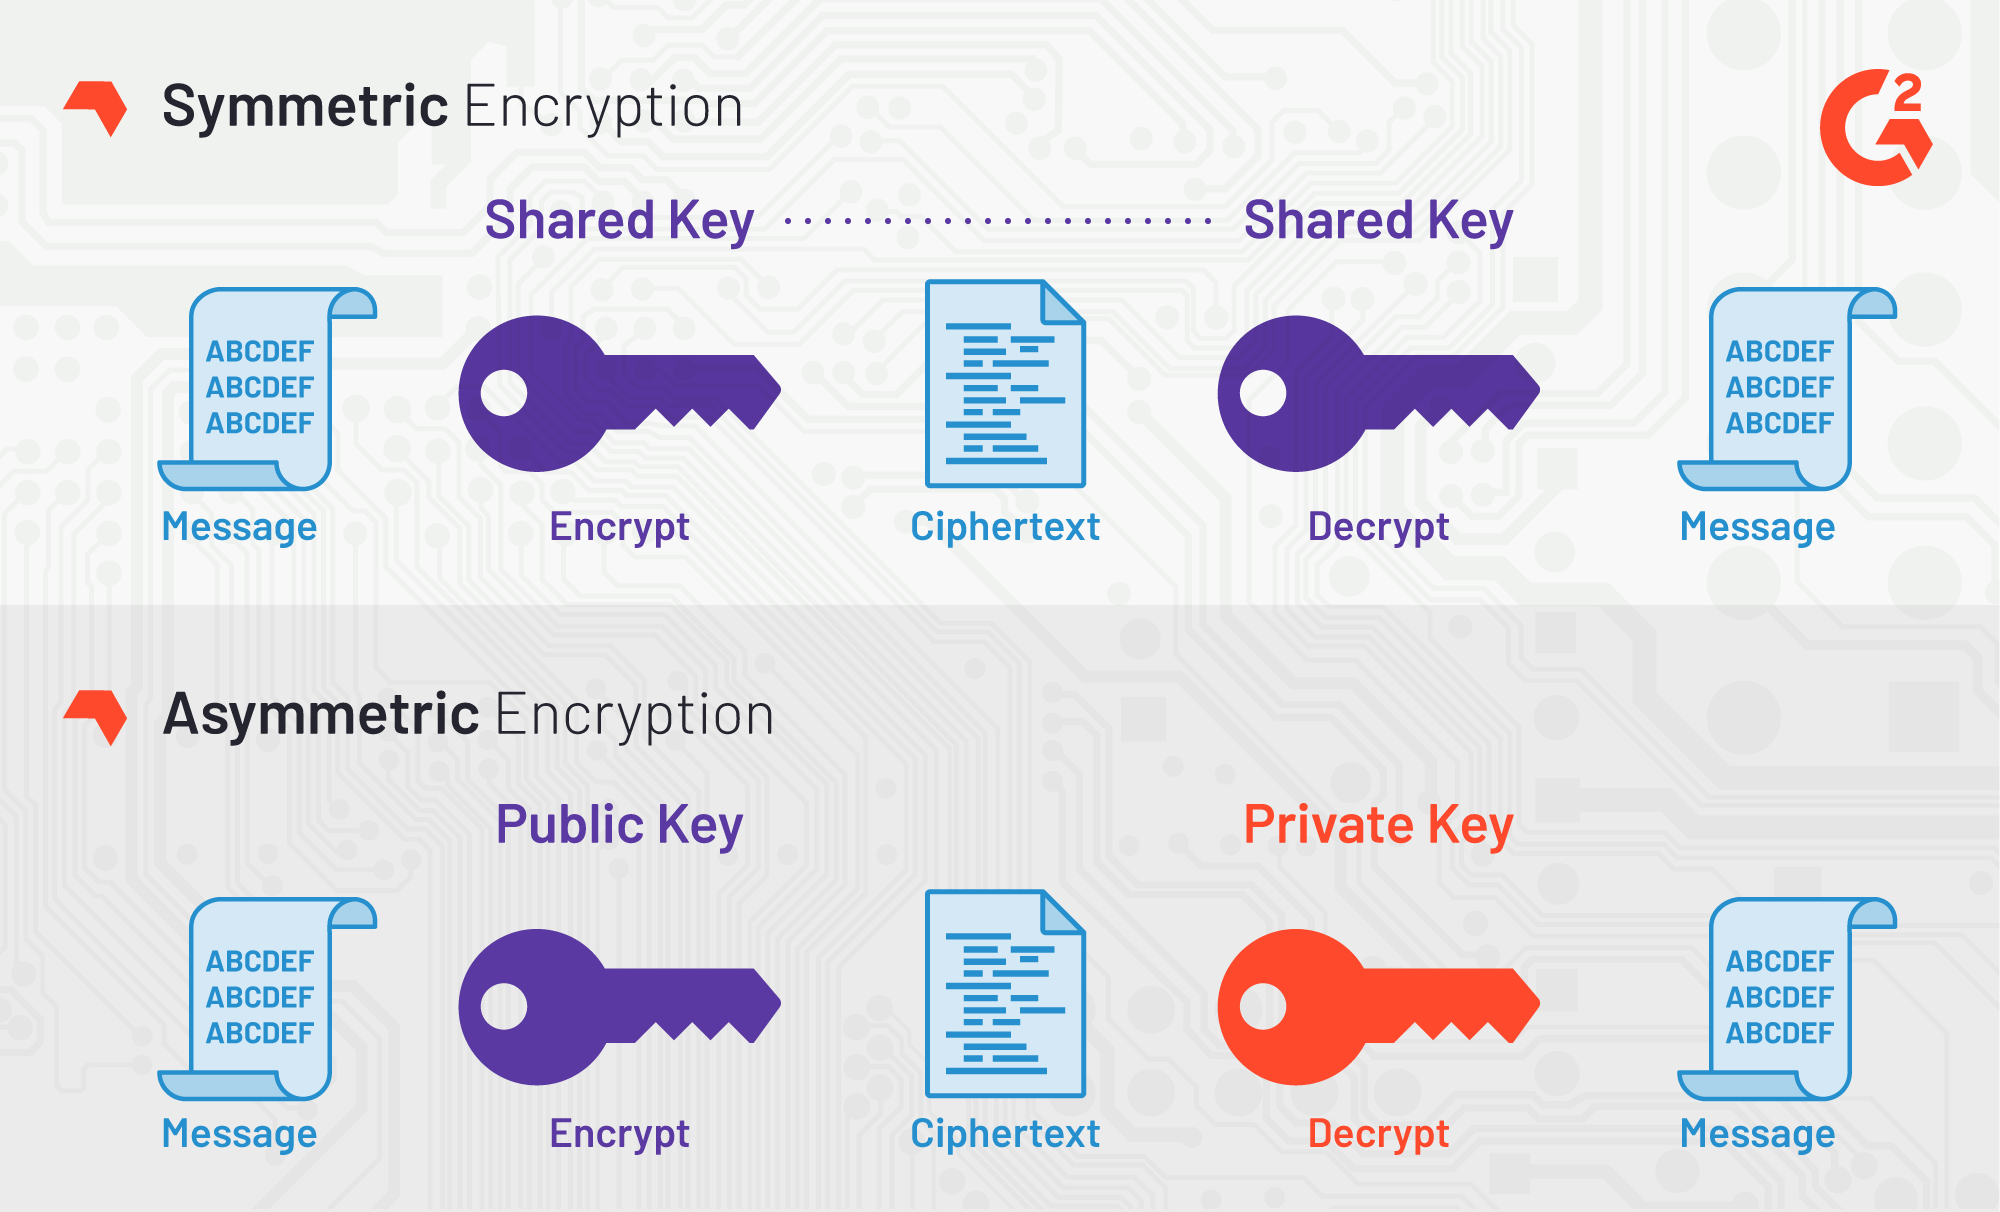 which type of key has one key for encryption and a different key for decryption